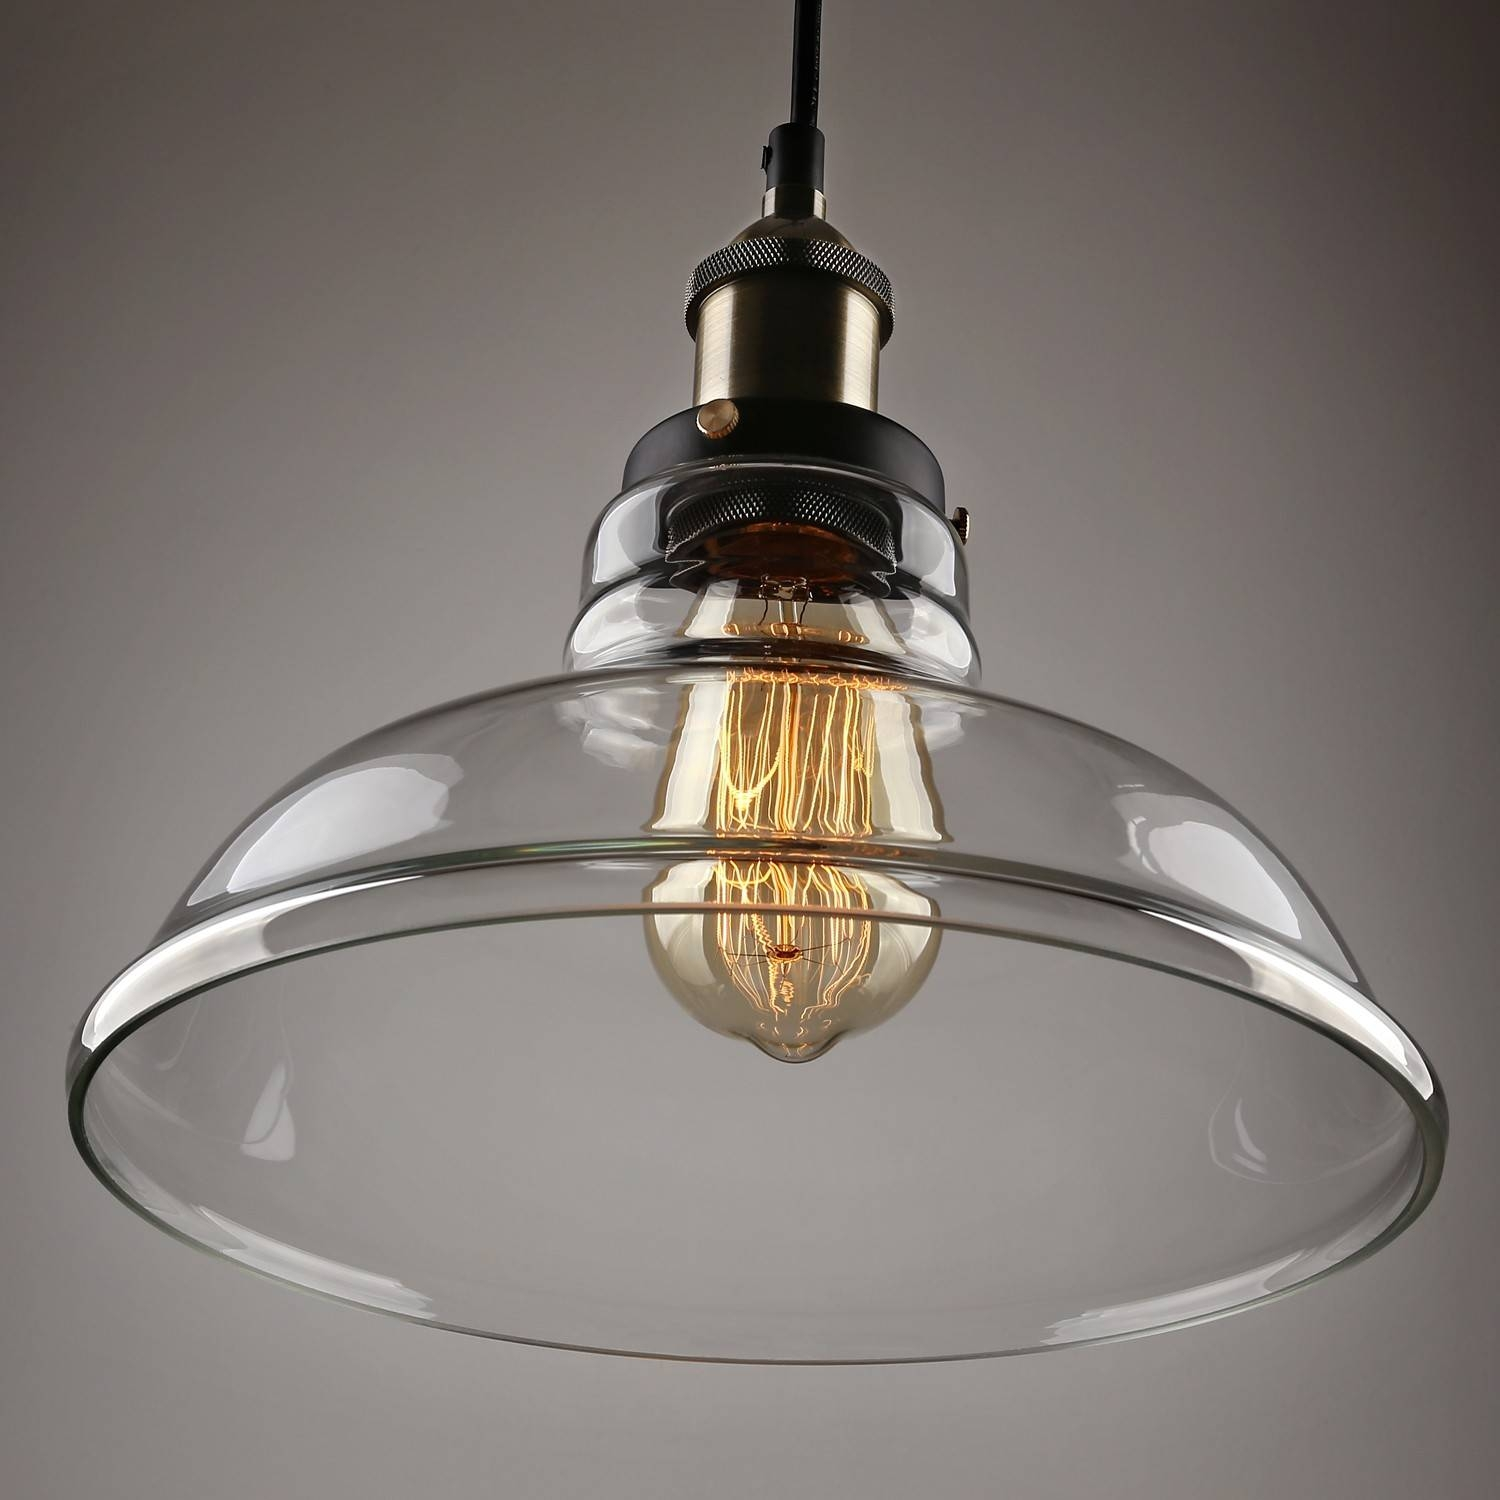 Pendant Lights : Luxurious Industrial Glass Light Ceiling Bedroom With Industrial Glass Pendant Lights (View 12 of 15)